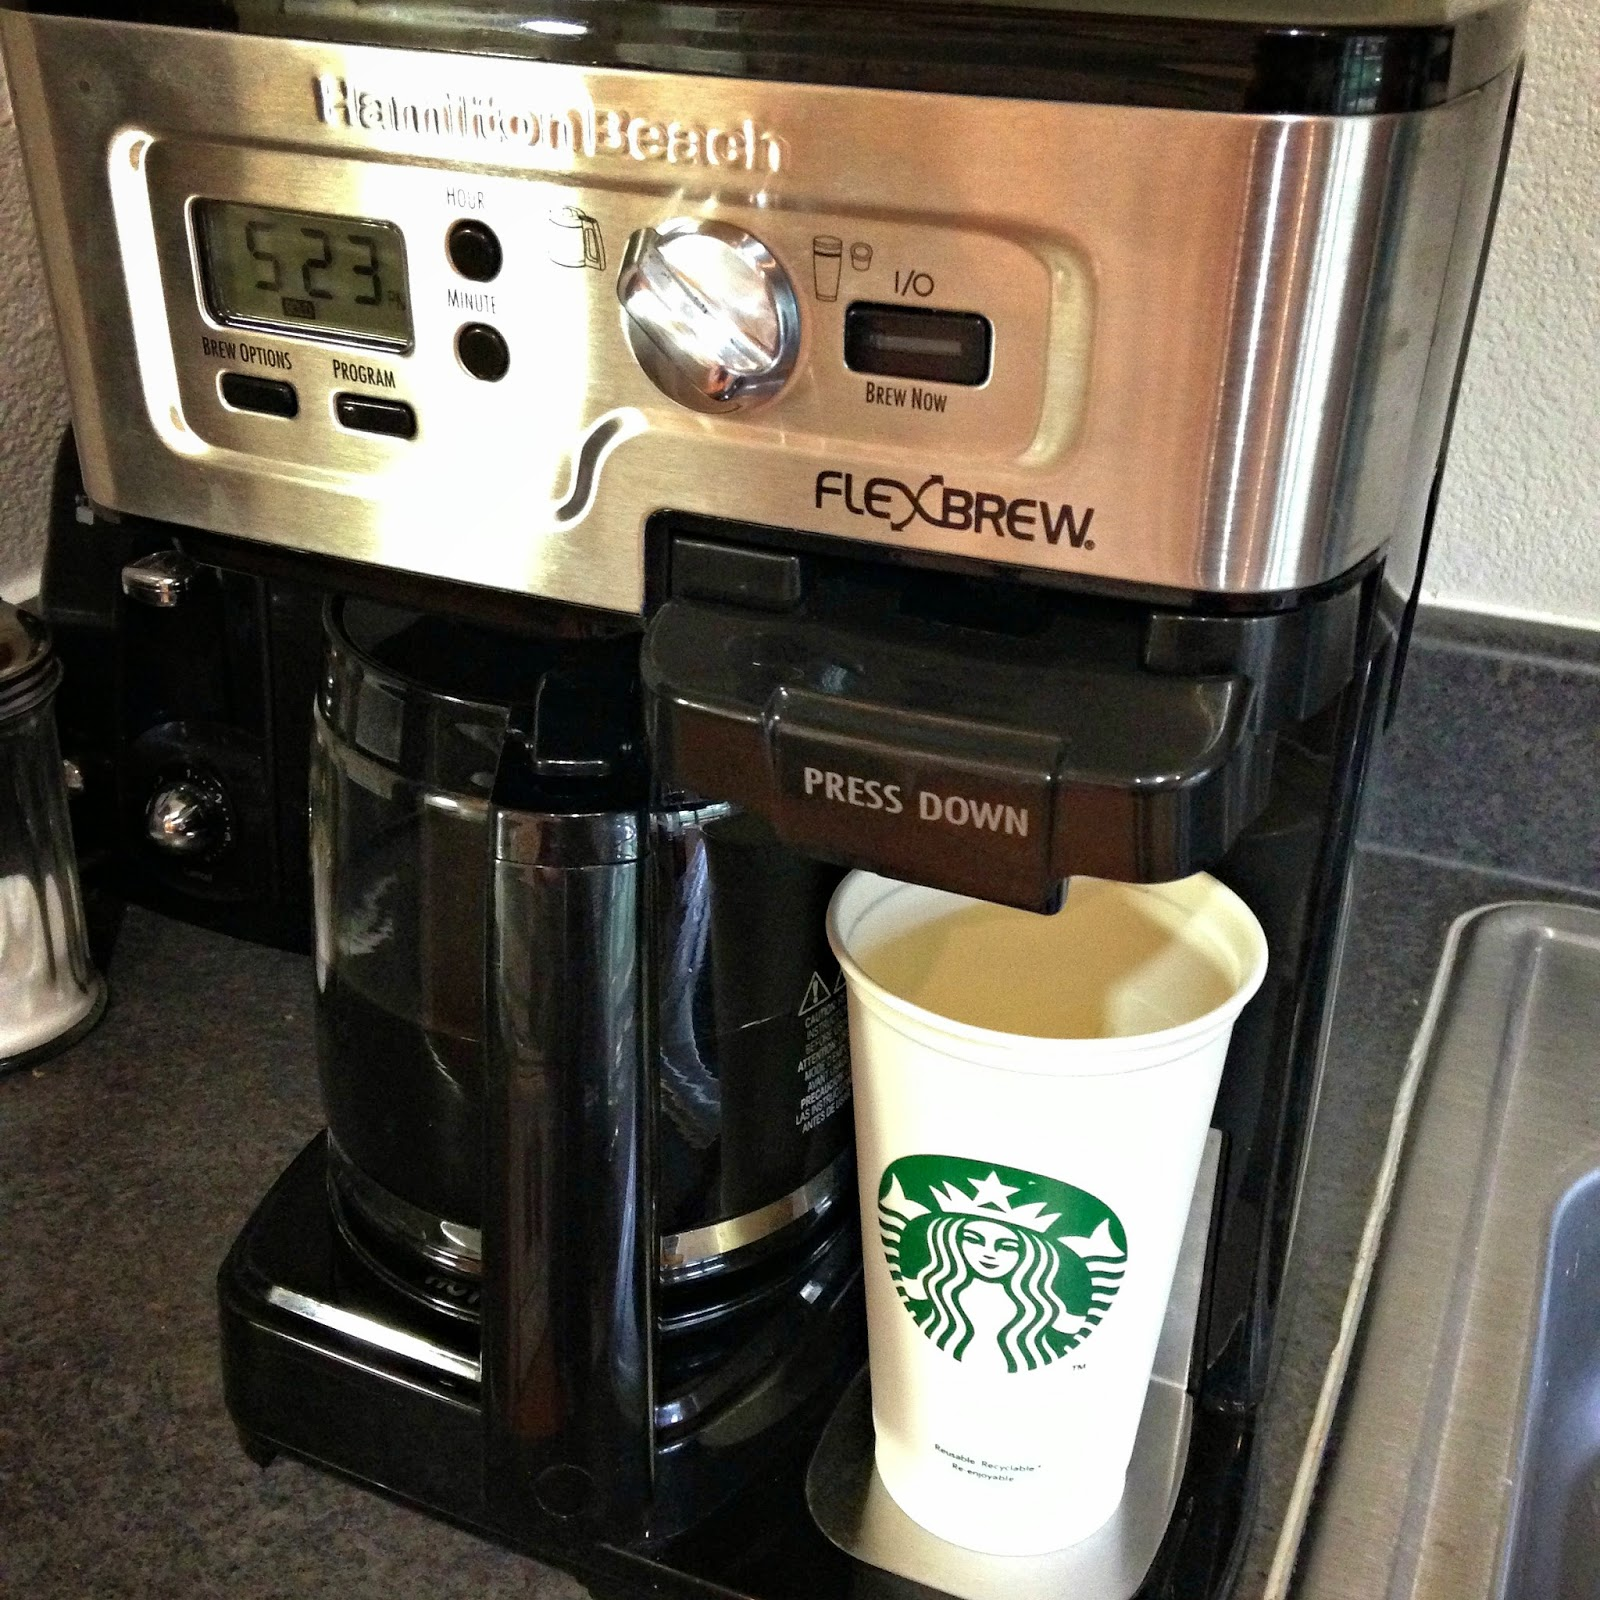 Family Dollar K Cup Coffee Maker : theFoodette & Family: Hamilton Beach FlexBrew - Giveaway!